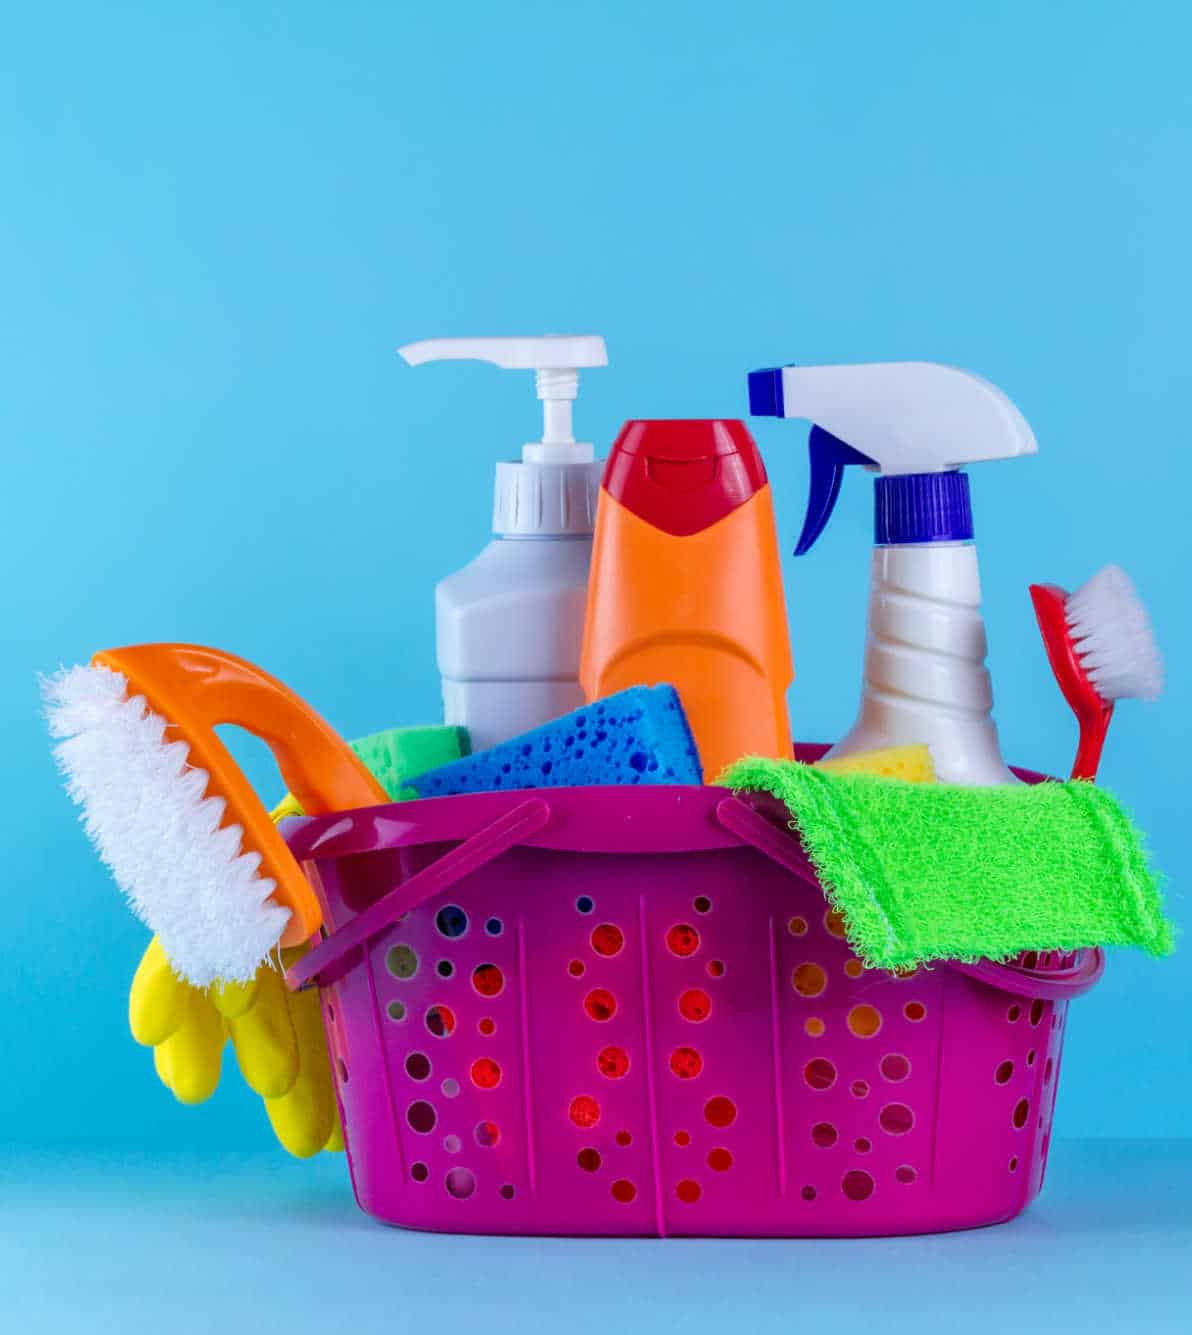 products-cleaning-house-basket